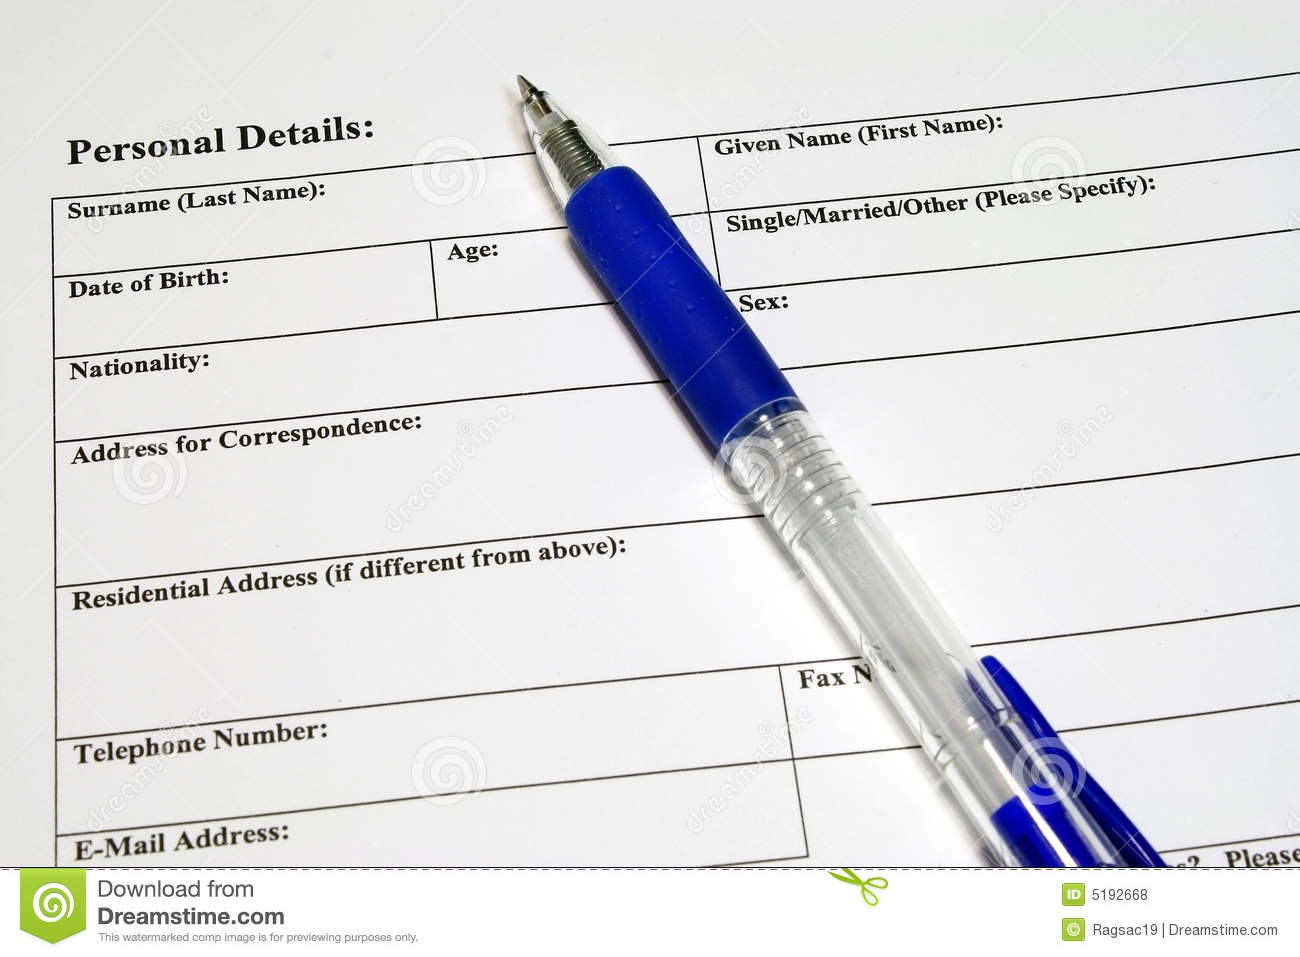 Application And Personal Details Form Royalty Free Stock Photos ...